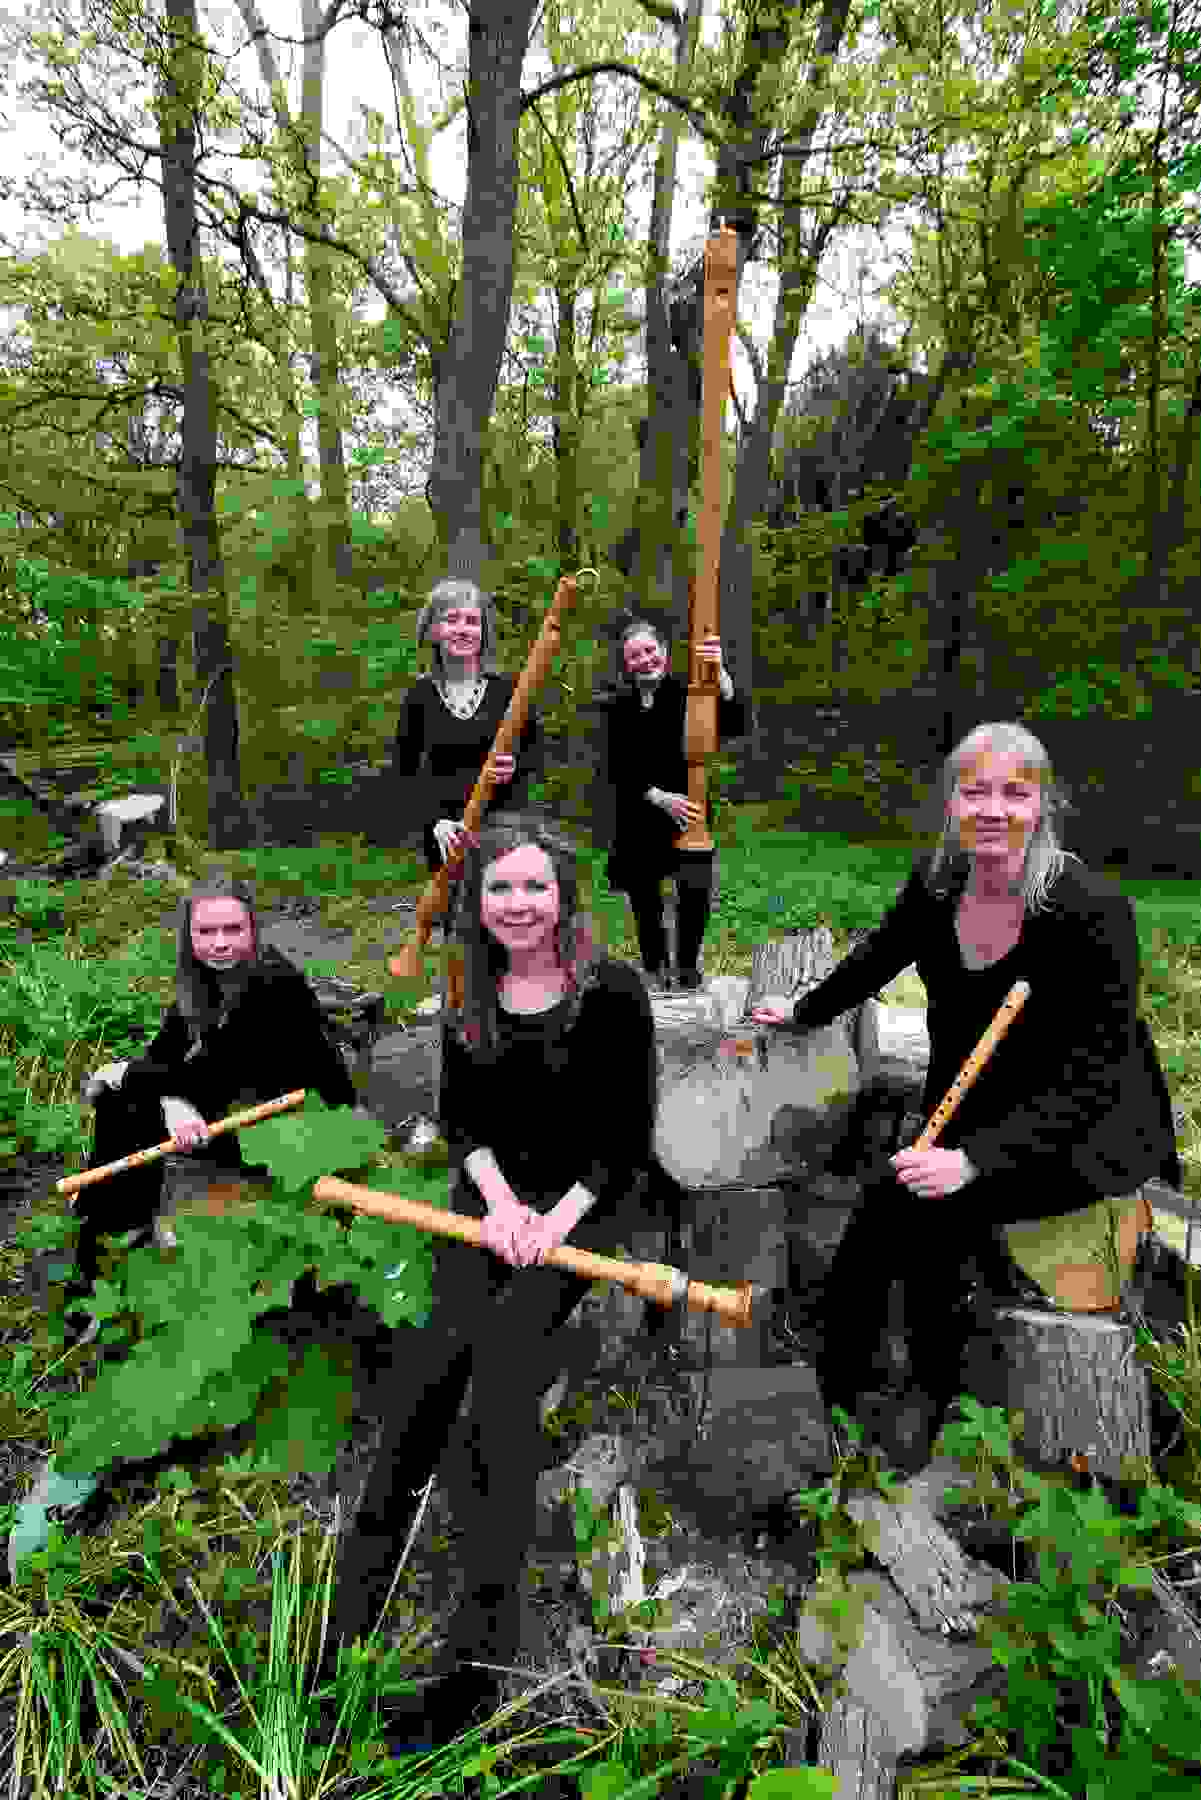 Fontanella Recorder Quintet - The Wood so Wild